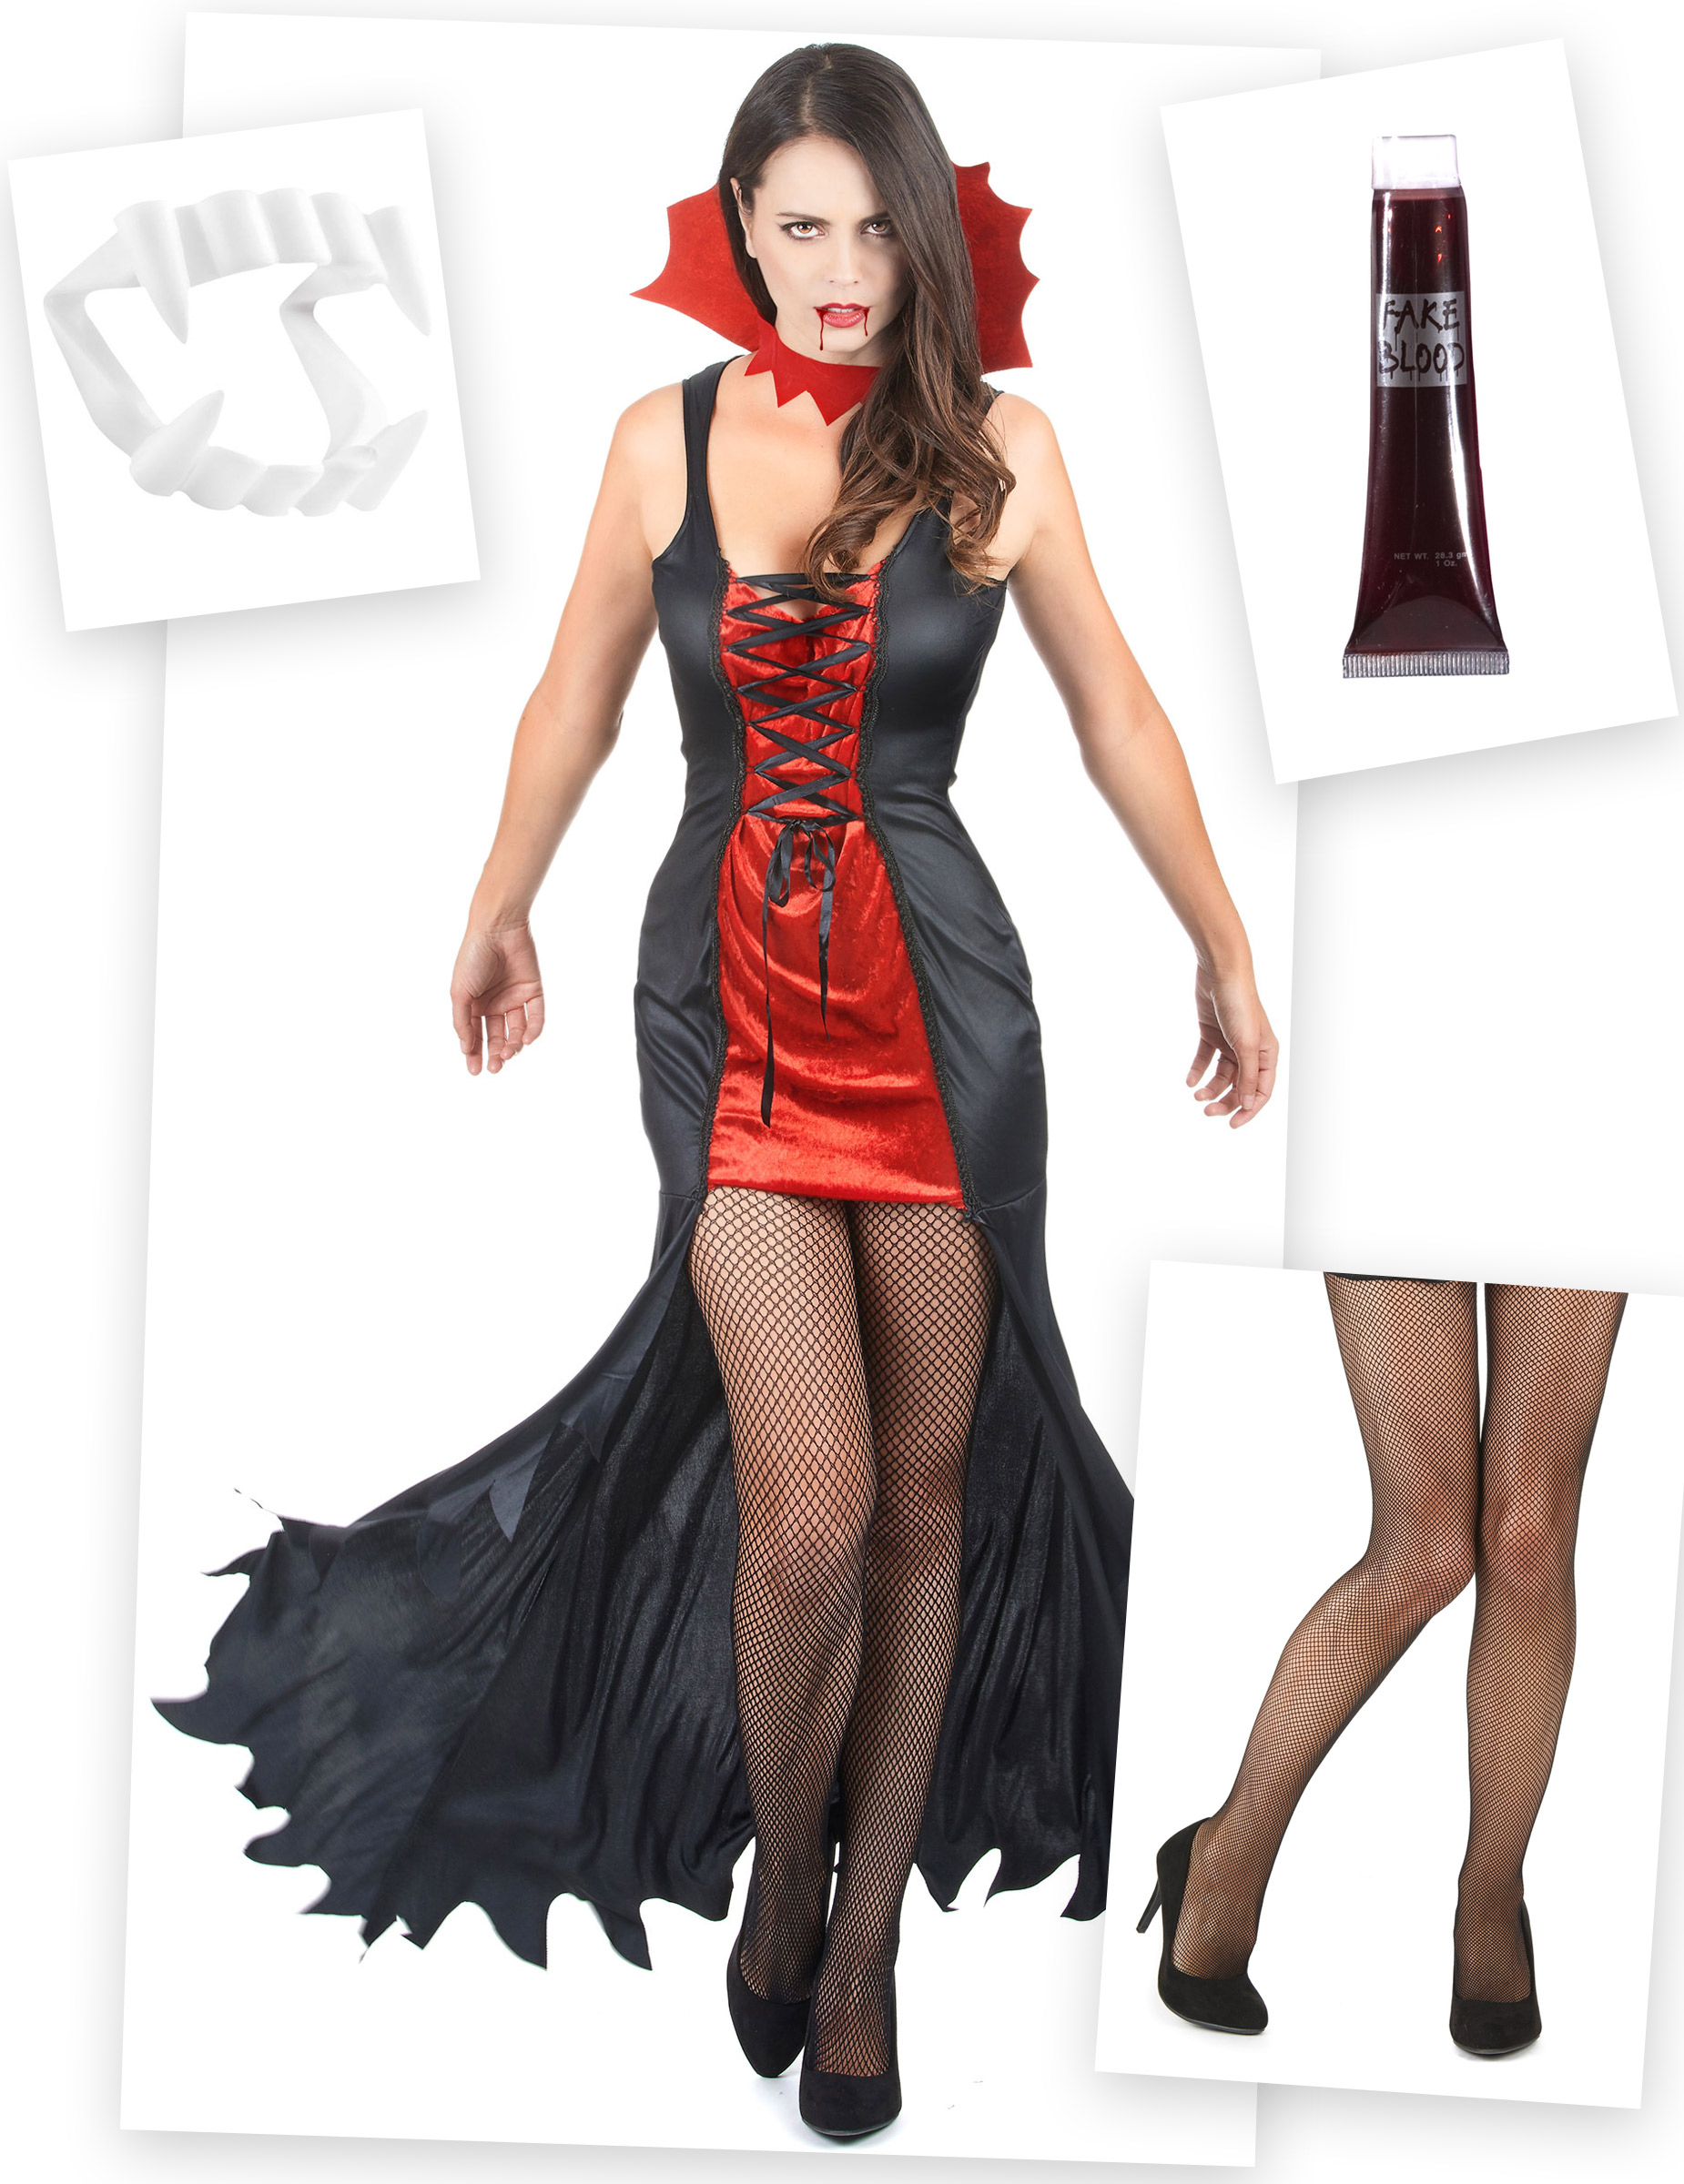 Set costume e accessori da vampiro per donna halloween  Costumi ... 7a5bf83a3b6a